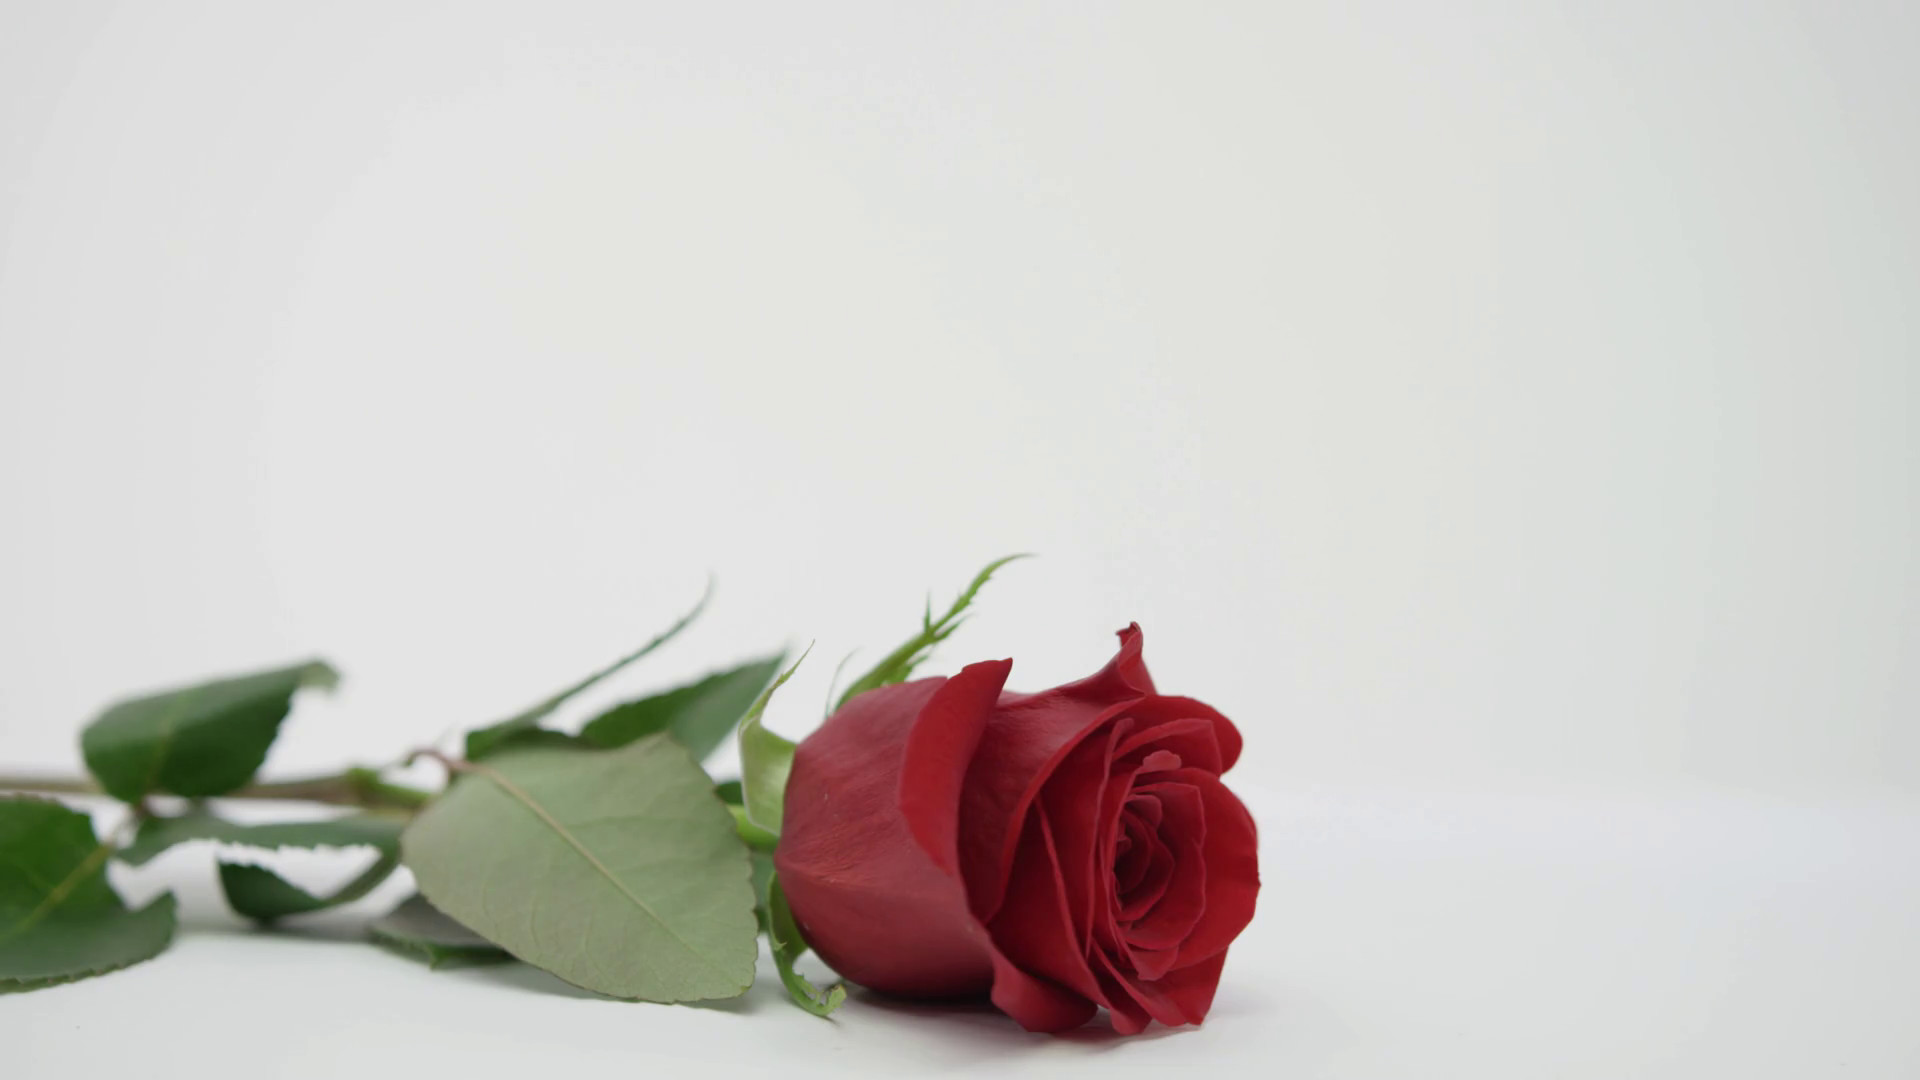 1920x1080 Picking Up Red Rose On White Background Love And Valentines Day Stock Video  Footage - Storyblocks Video